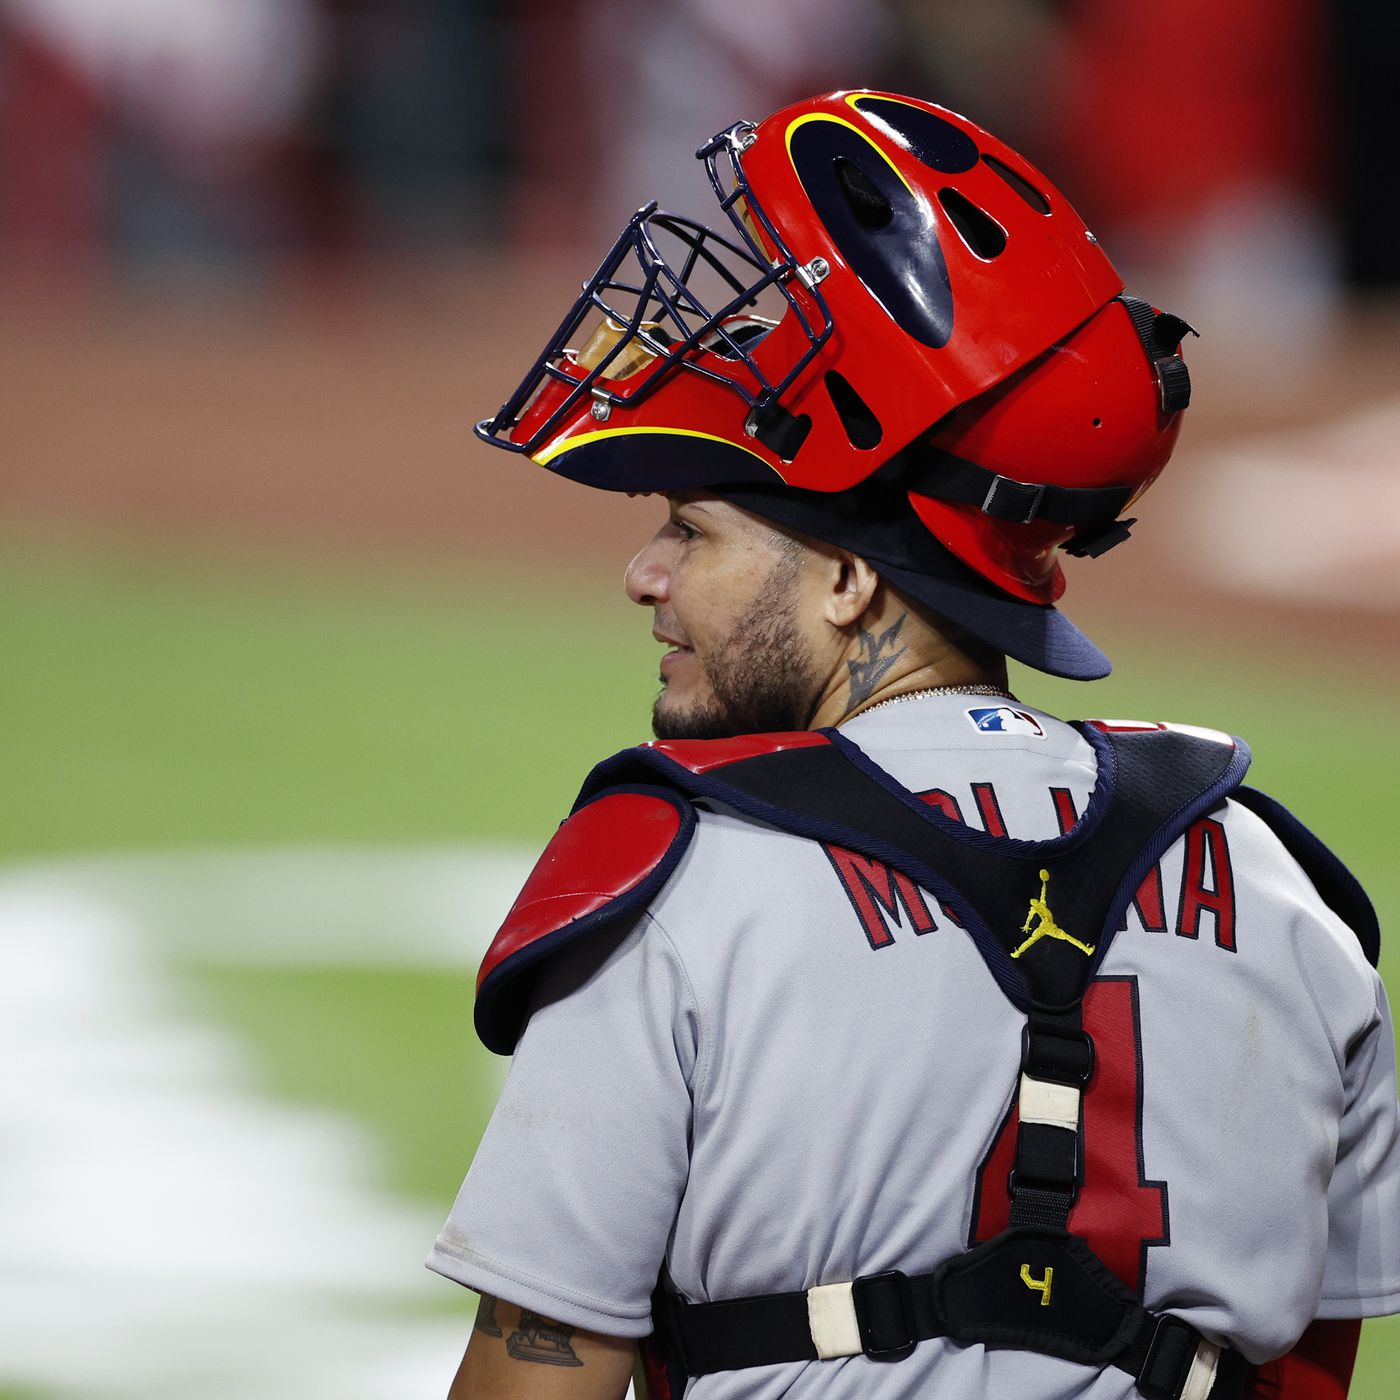 Yadier Molina might not improve the Mets catching situation - Amazin' Avenue